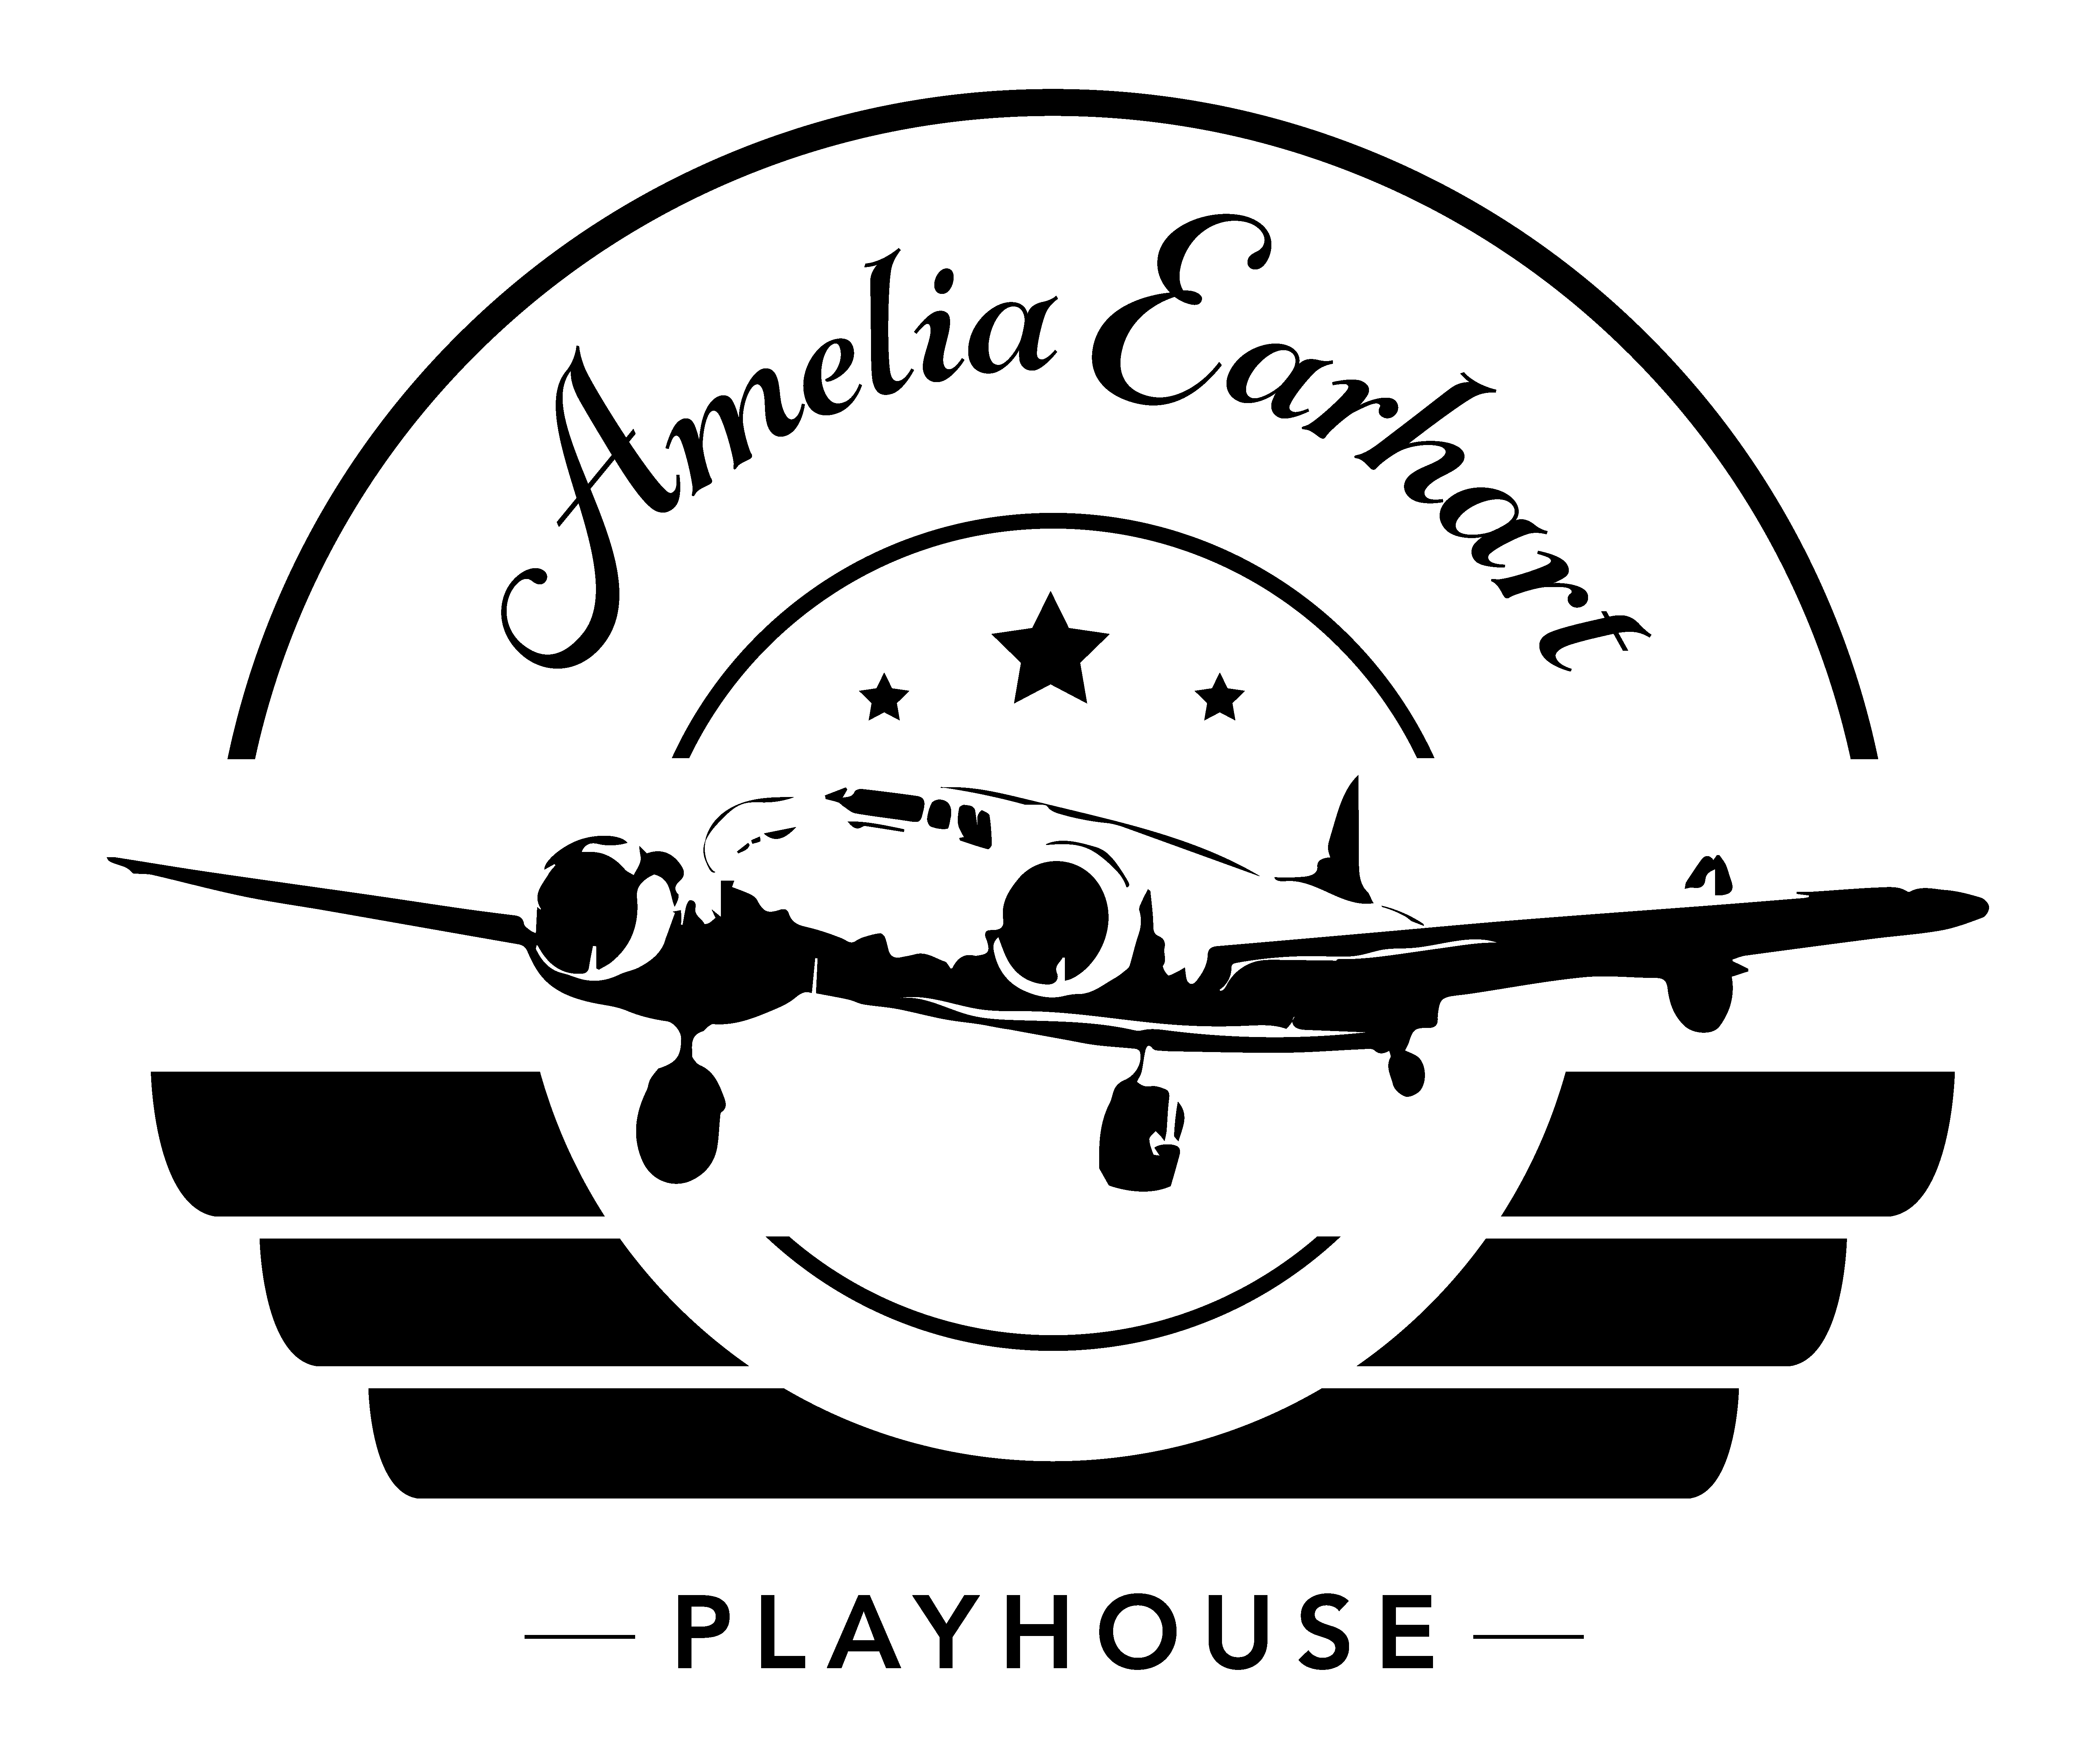 Amelia Earhart Playhouse Logo.jpg